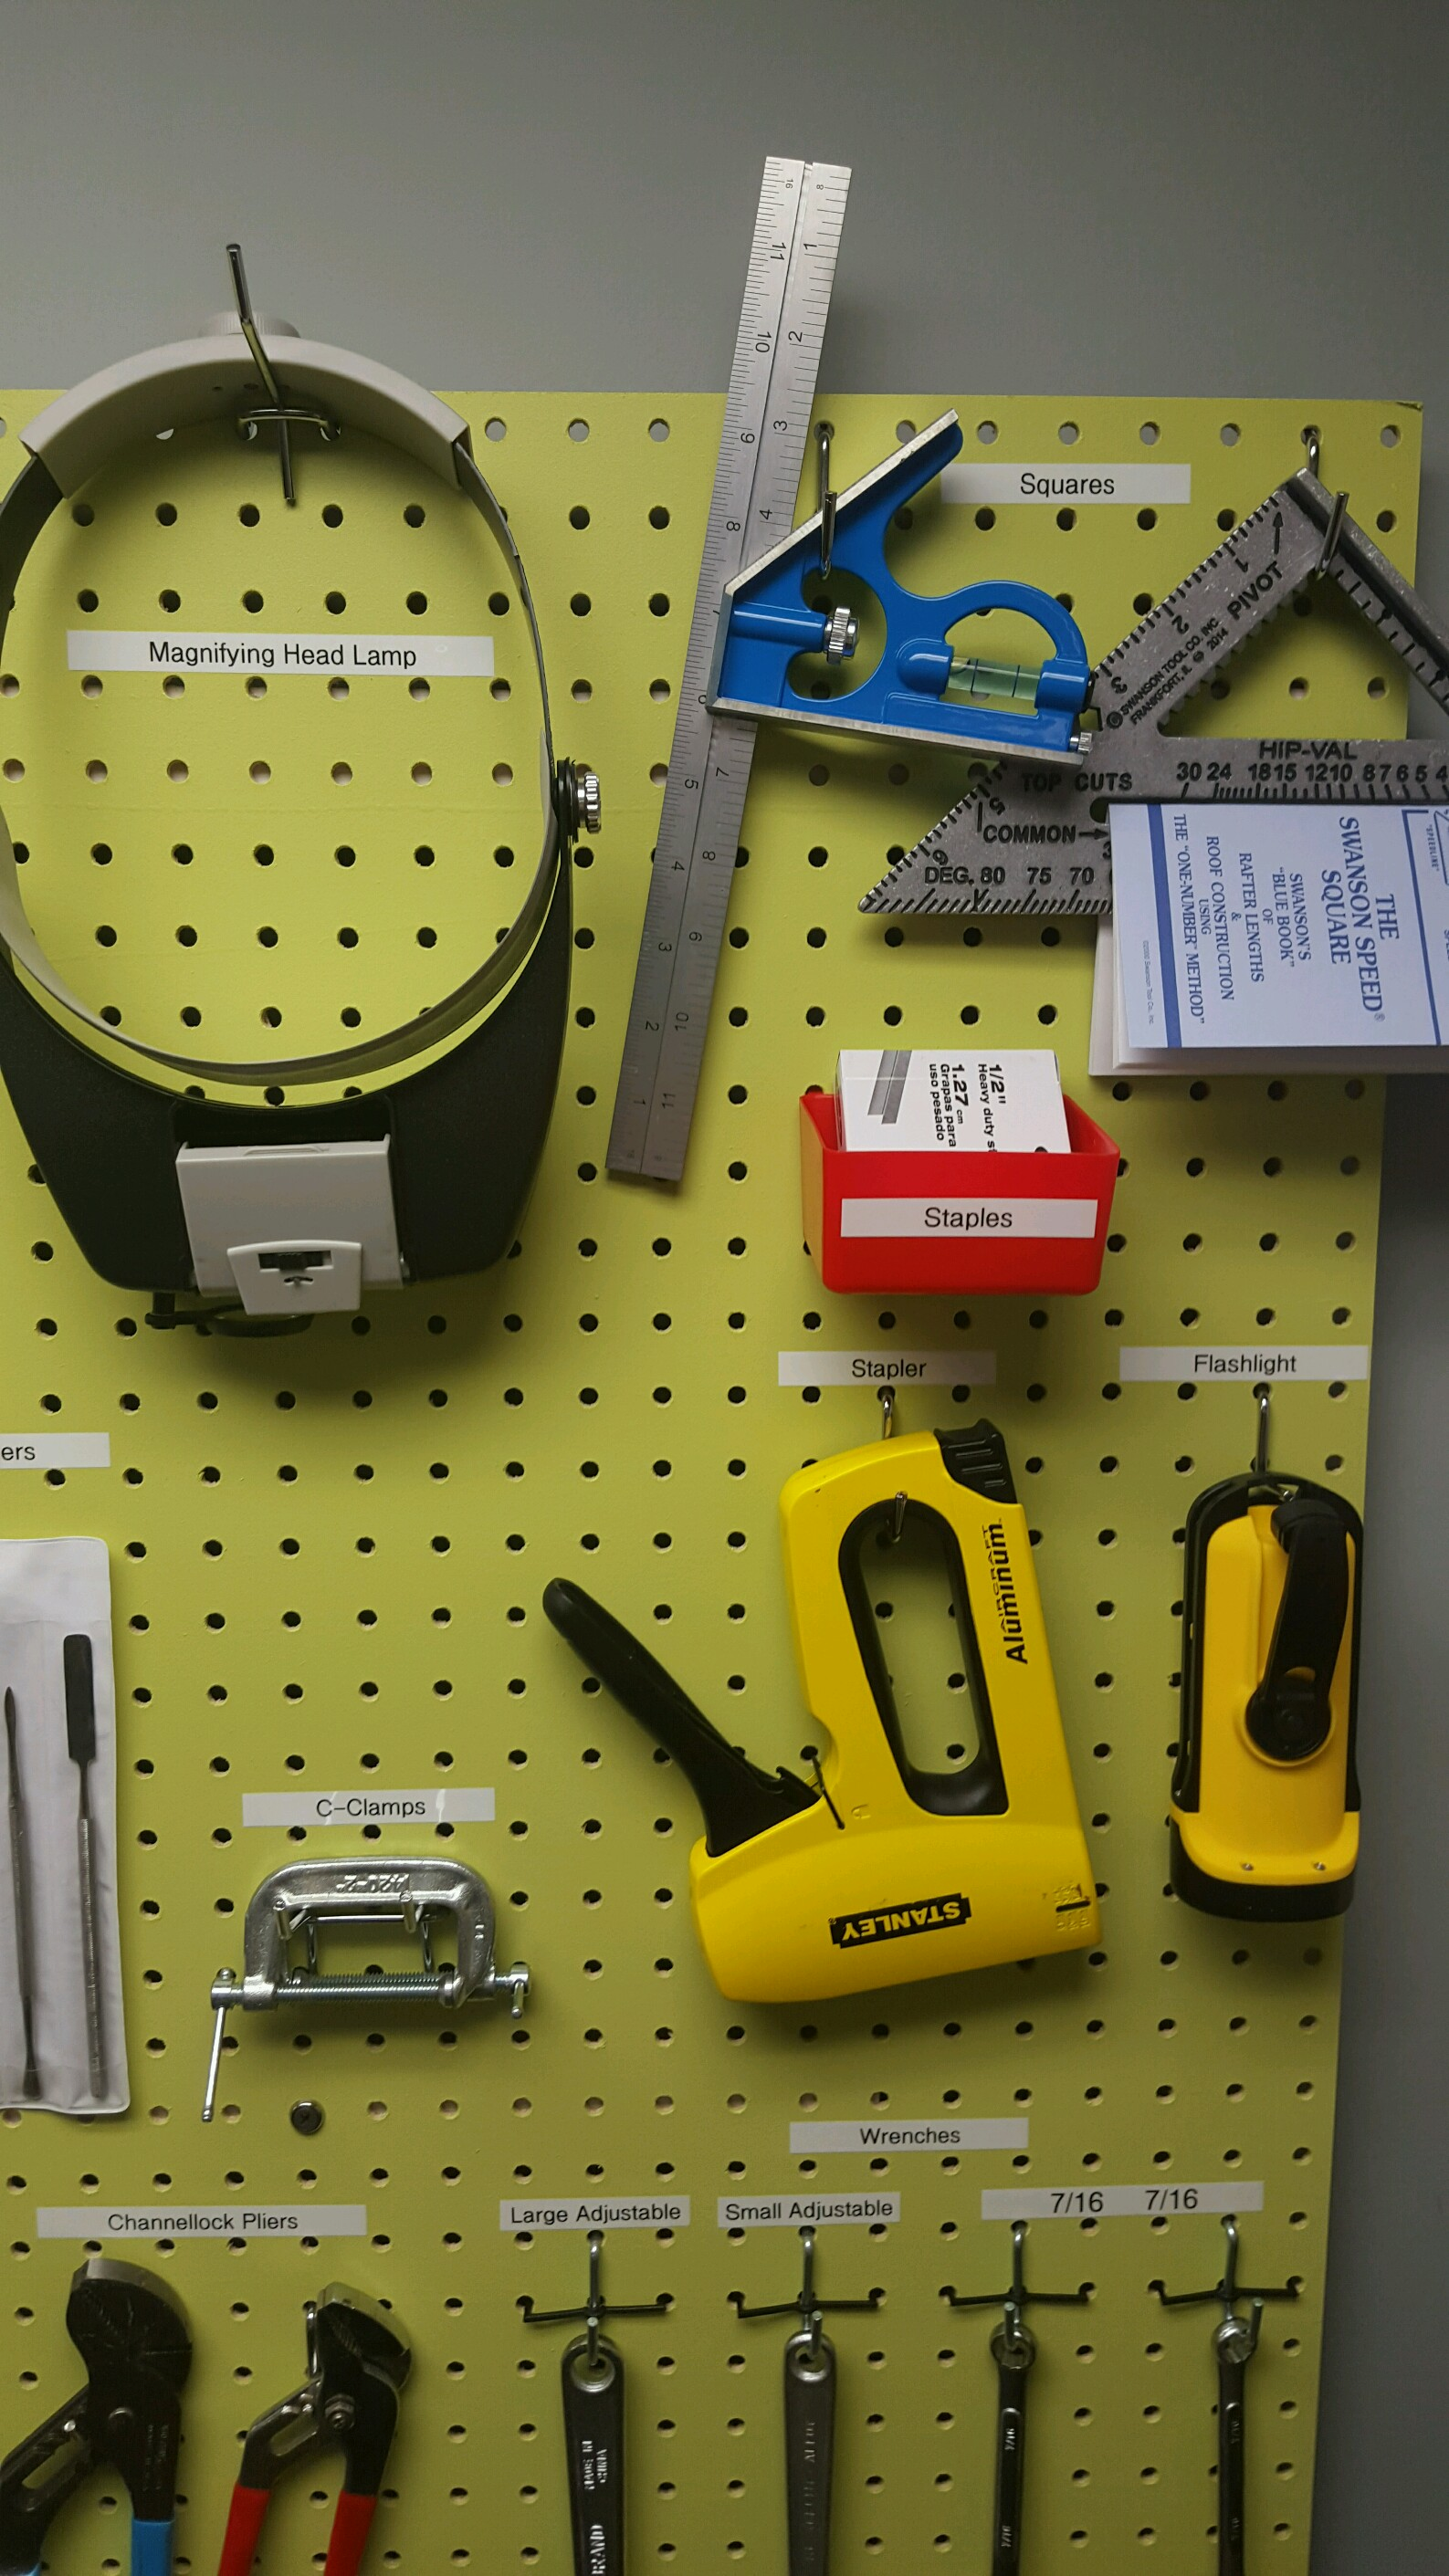 Magnifying Head Lamp, C clamps, Squares, Staple Gun, and Flashlight